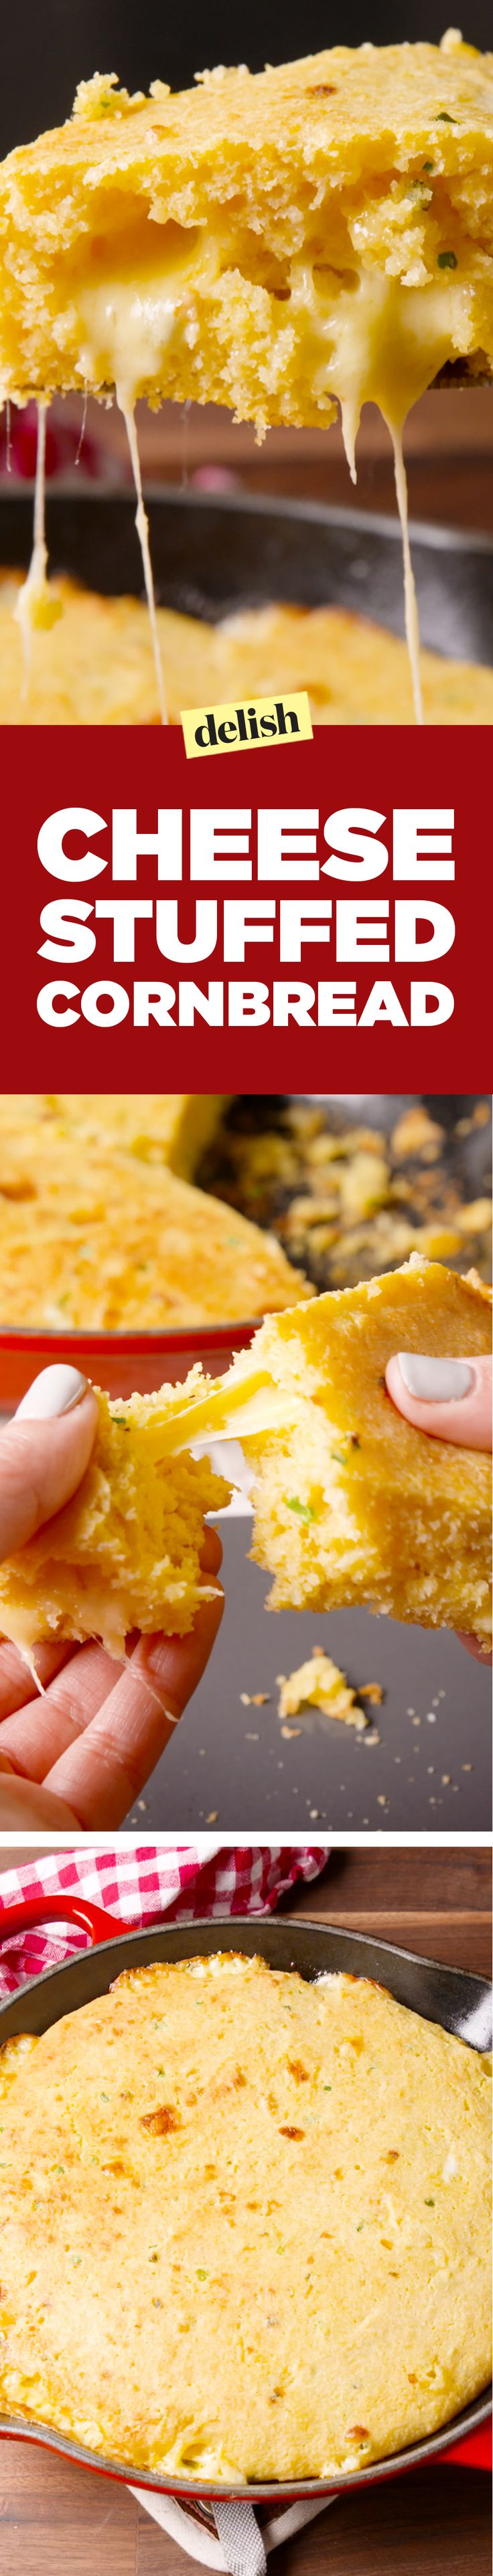 Cheese stuffed cornbread is the definition of comfort food. Get the recipe on Delish.com.